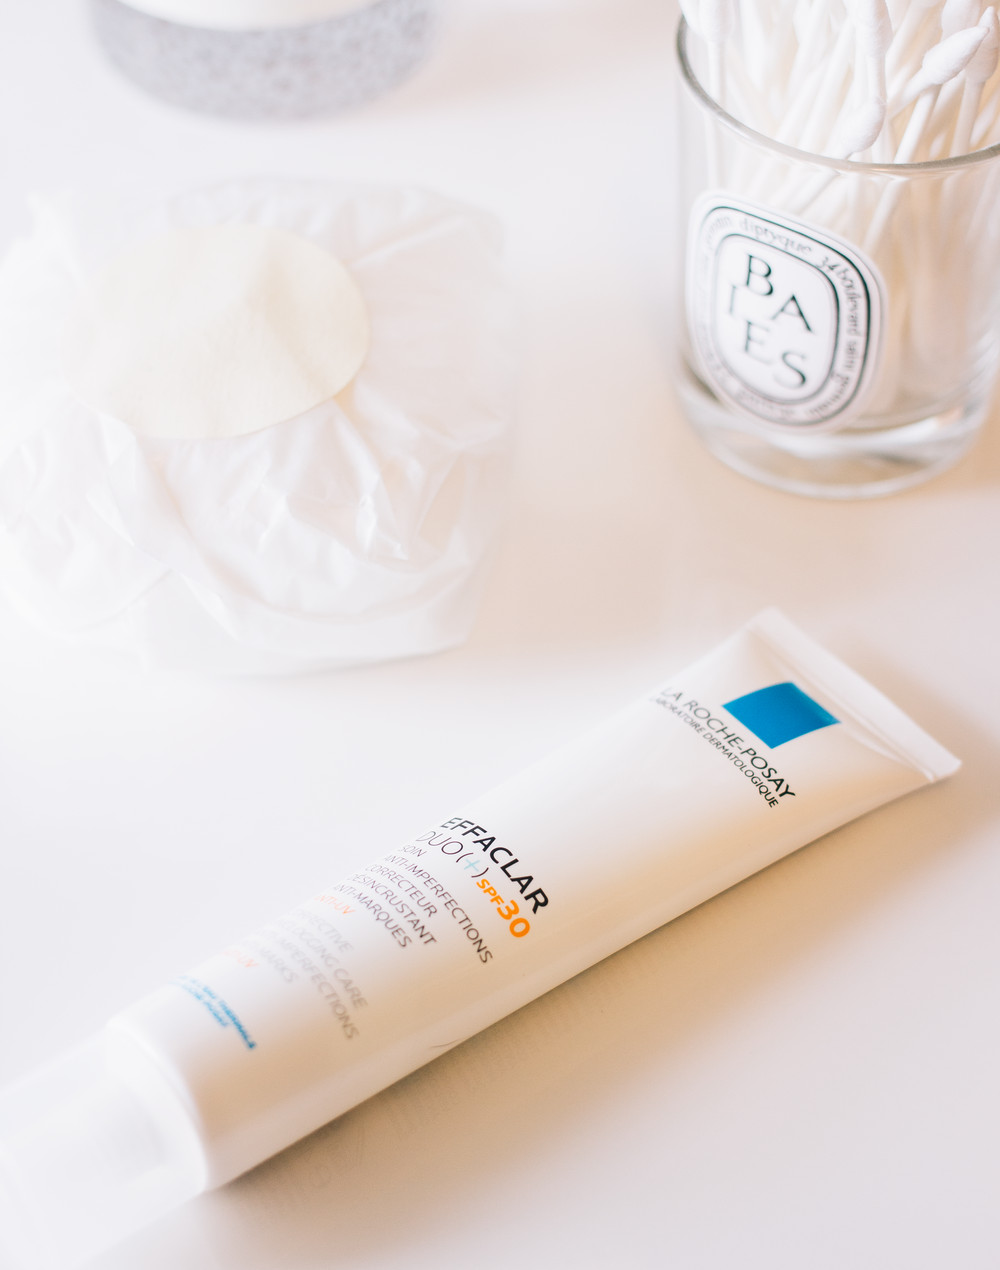 LA ROCHE POSAY EFFACLAR DUO [+]* - If you're a really long time reader of this blog, in particular, my beauty posts then you will know all about my absolute adoration for this product. It completely changed the state of my skin 5 years ago and as my skin went through its usual transitional freakout I turned back to this to see if it would still work its magic. If you're not familiar with this product it's an unclogging serum that keeps on top of everything that is coming out your pores and the formulation now not only contains SPF but it also helps tackle scaring too which when your blemish prone is an absolute must. I can't be the only one who finds scarring harder to cover up than the blemish itself can I? I will say that this is quite a marmite product and it either works wonders for your skin or it doesn't. For me it really does work, it clears everything up that might be lurking and it also really helps with any texture issues that I might have. And one of the best things about this product is that it's not horribly expensive.